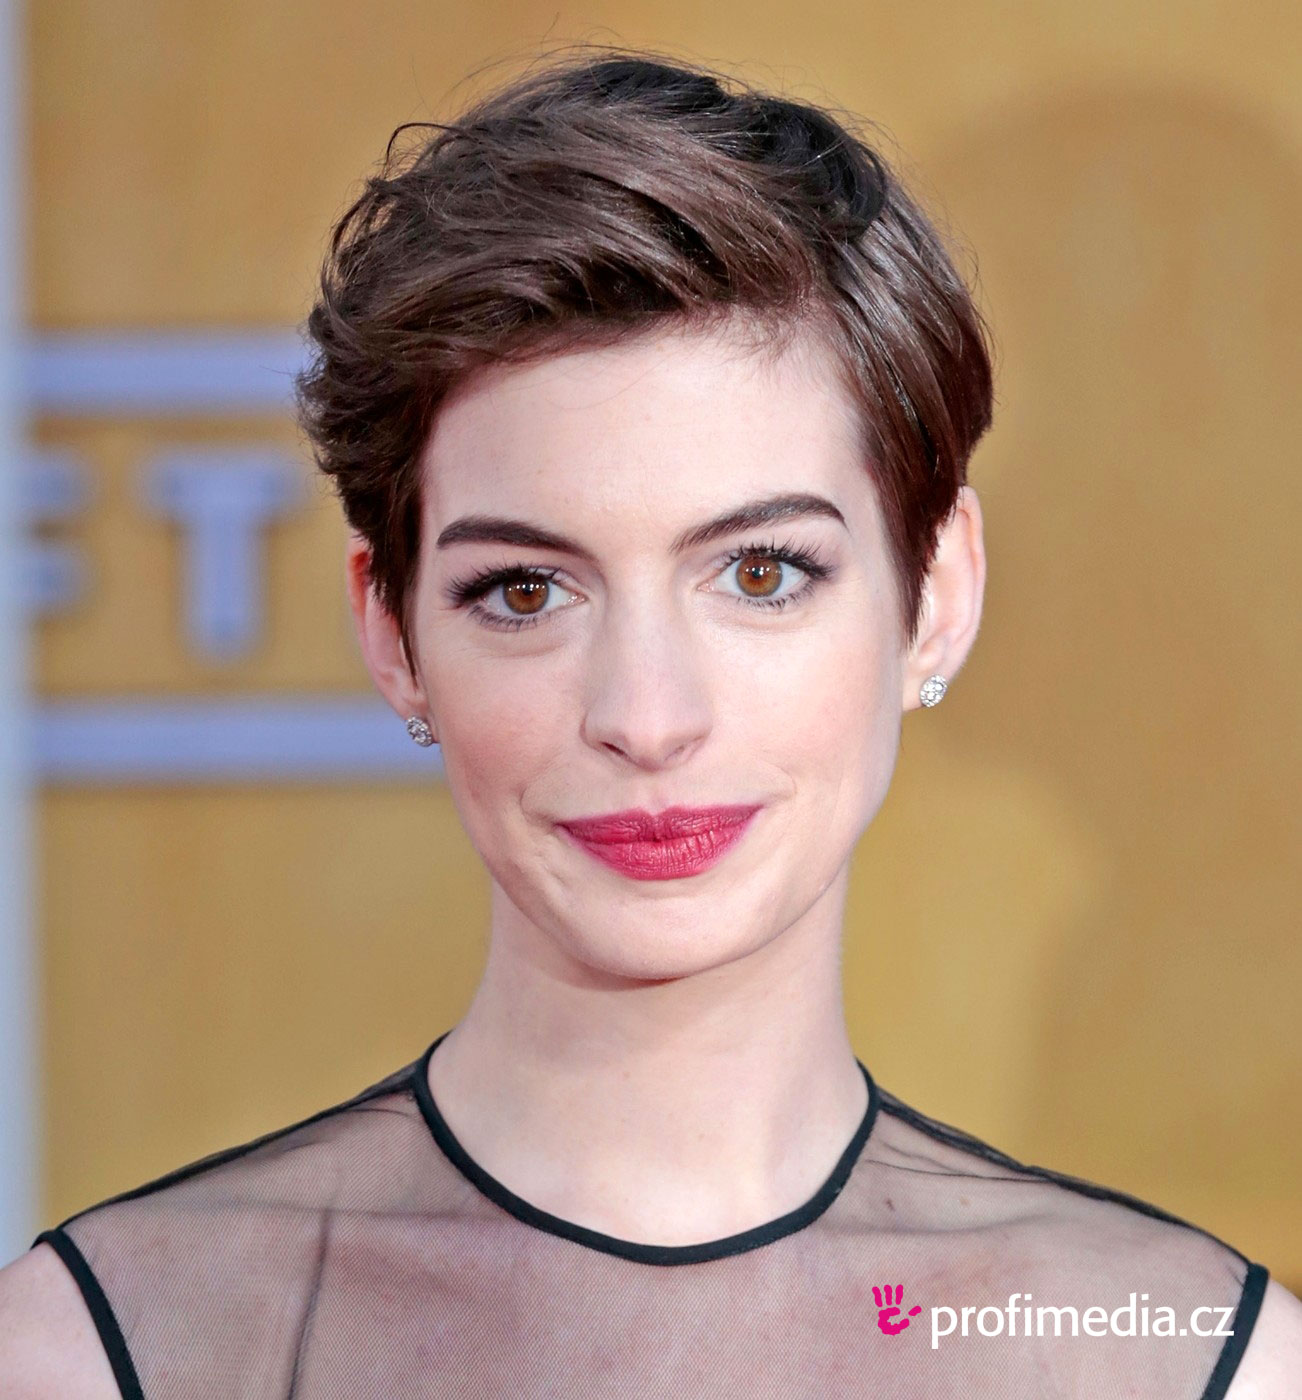 anne hathaway frisur zum ausprobieren in efrisuren. Black Bedroom Furniture Sets. Home Design Ideas